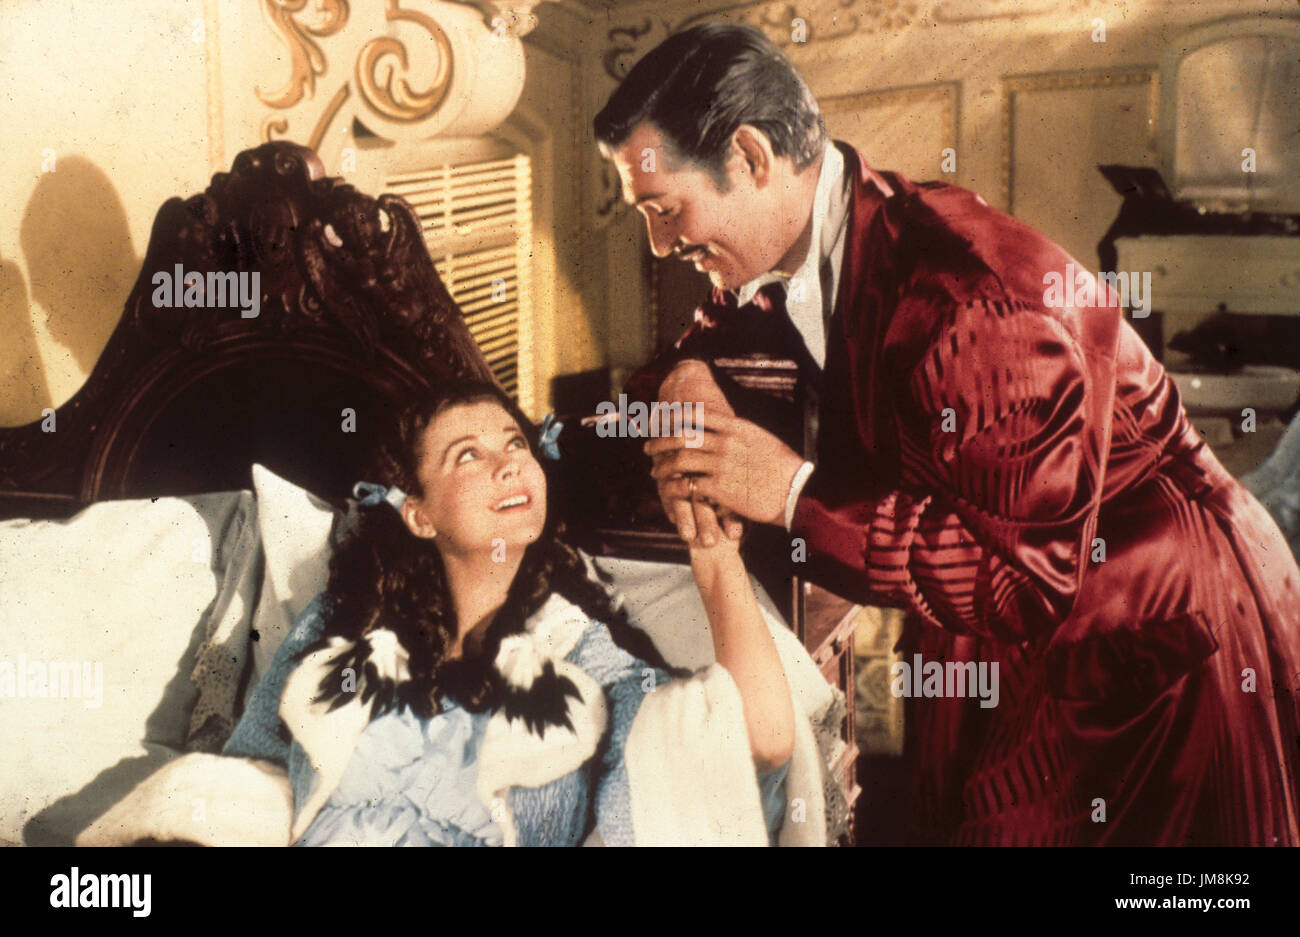 clark gable, vivien leigh, gone with the wind, 1939 - Stock Image